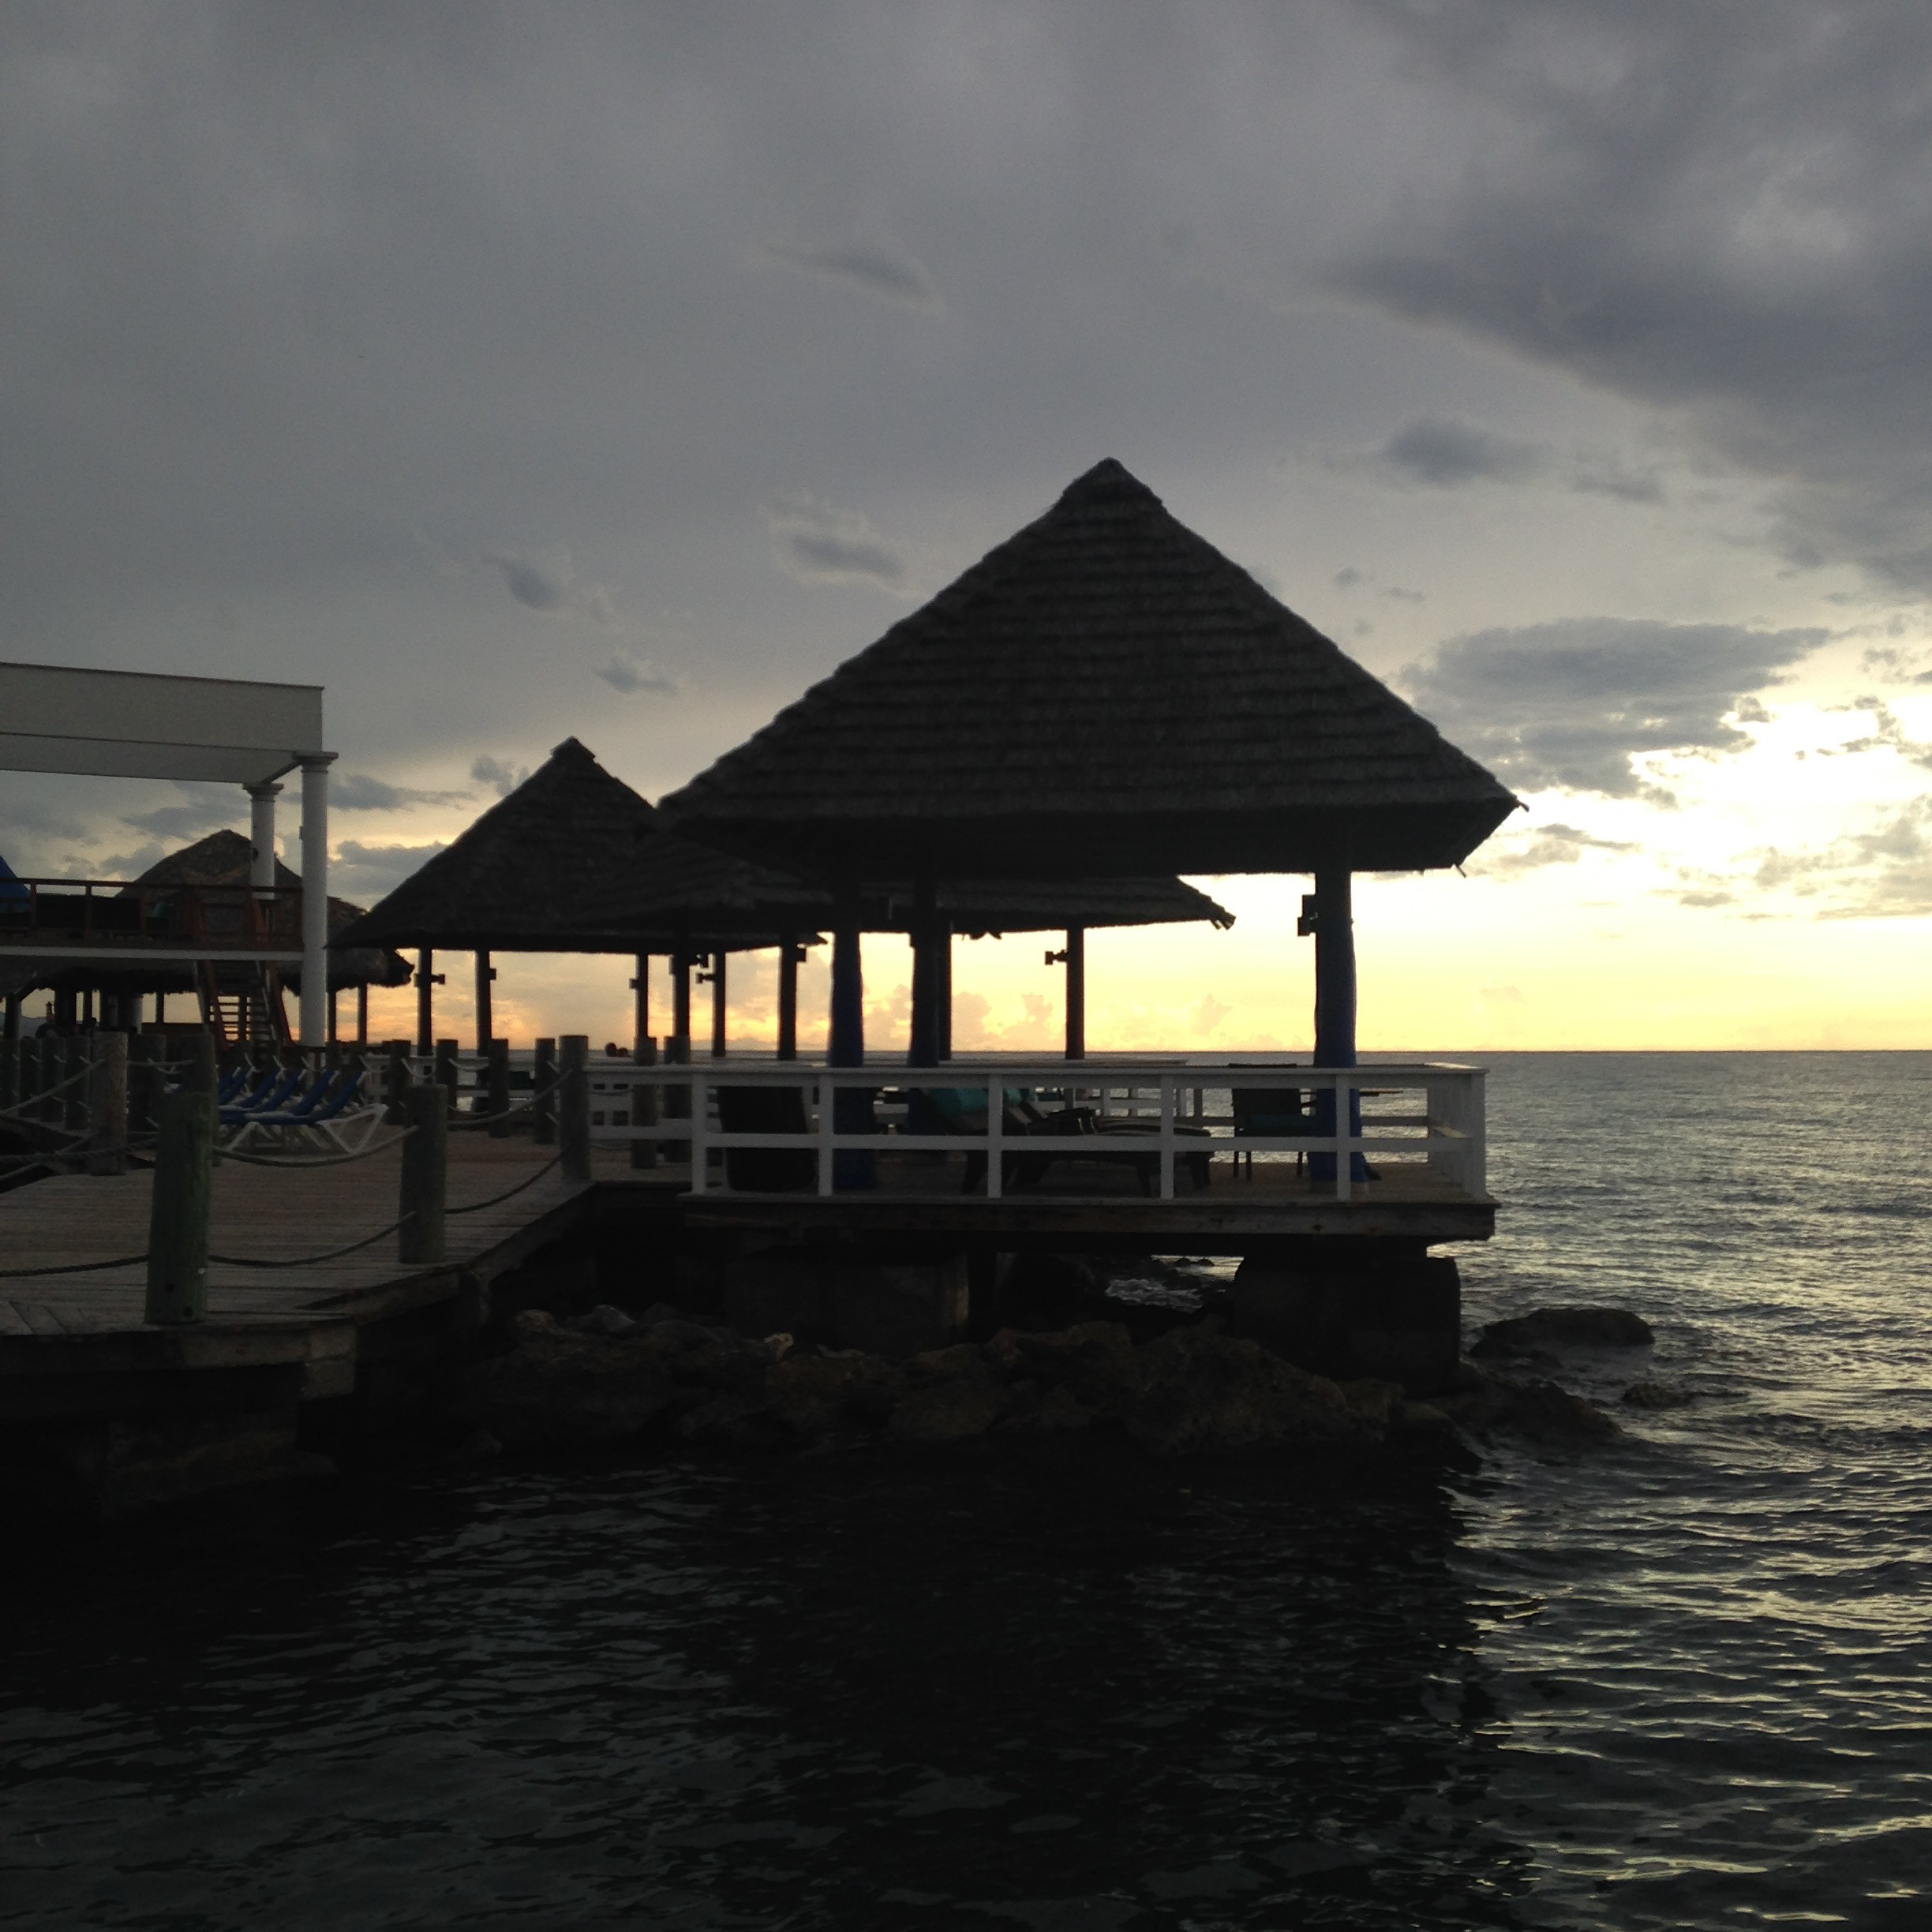 Wordless Wednesday: Sandals Ochi